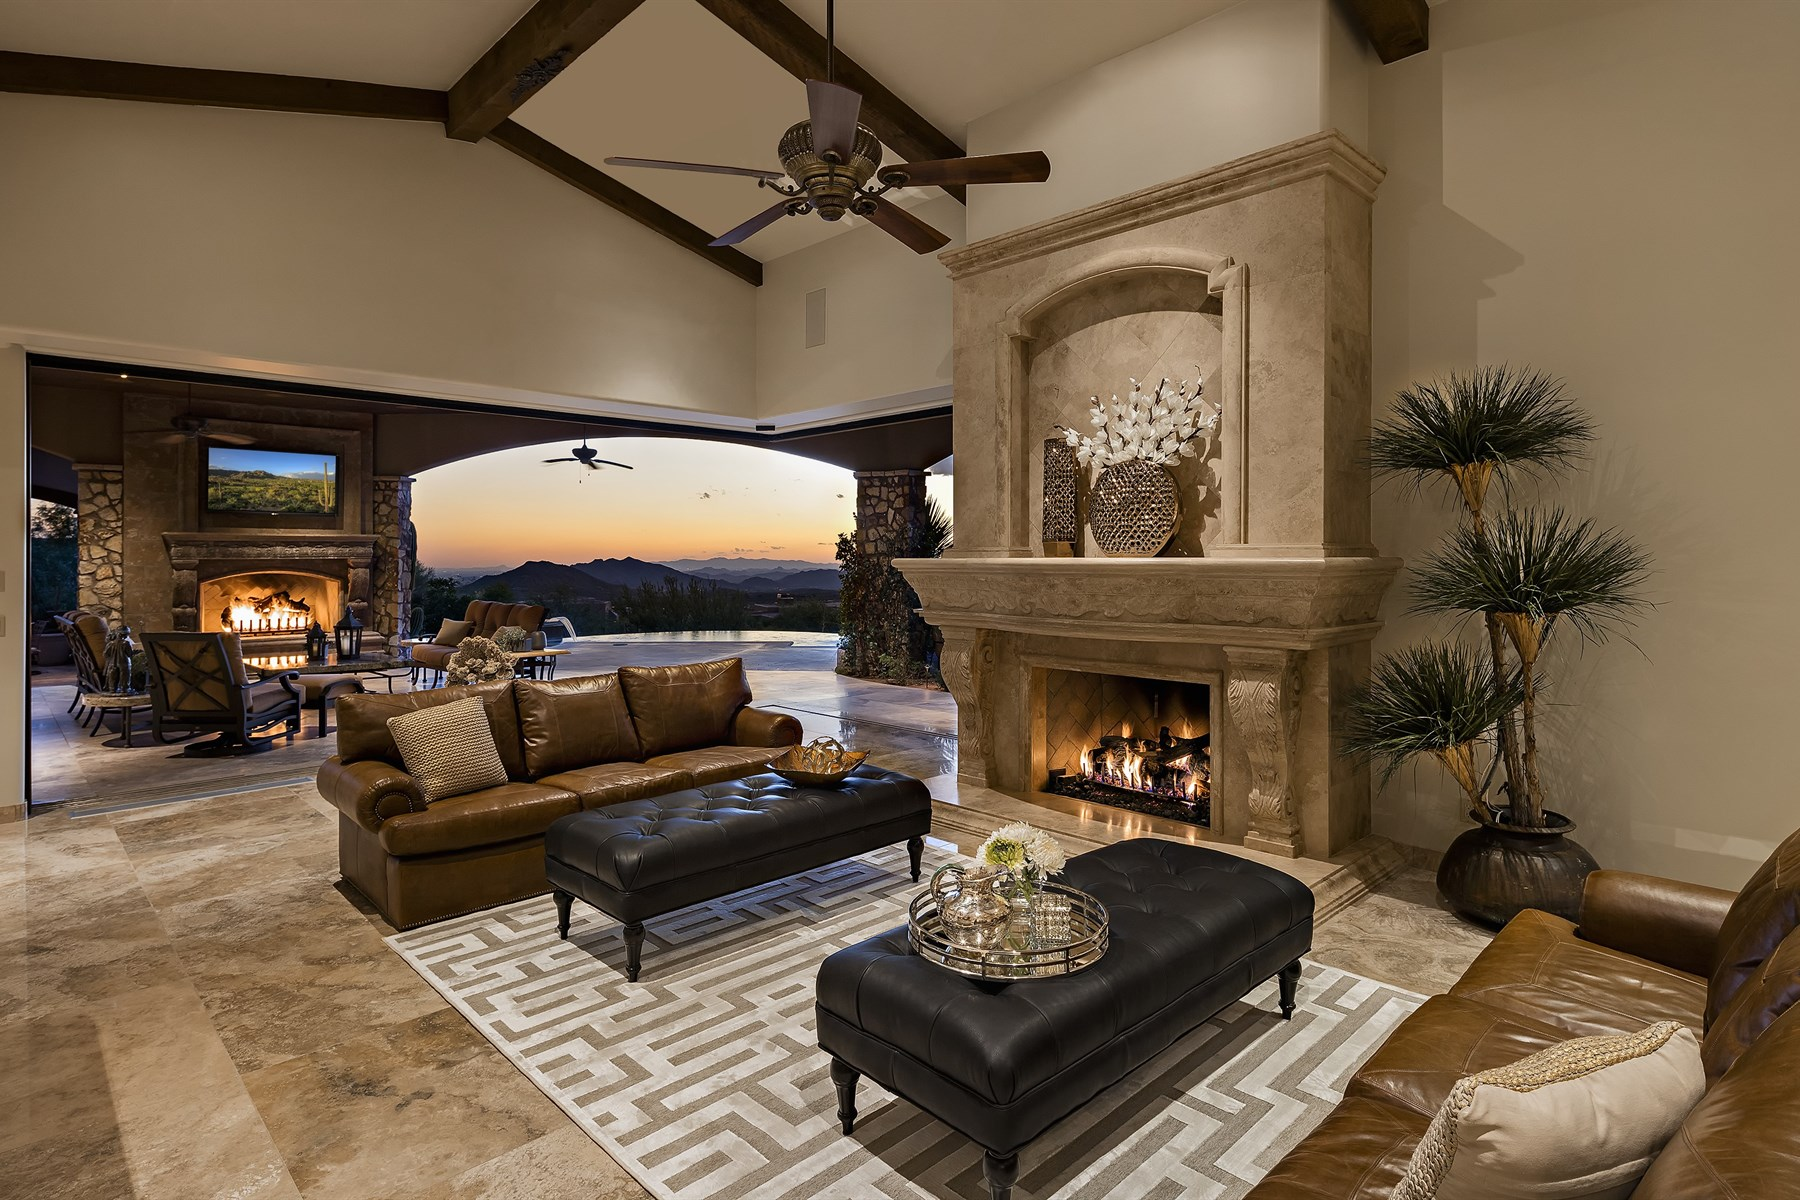 Single Family Home for Sale at Warmth and elegance greet you at the front door with putting green and waterfall 42145 N 111th Place Scottsdale, Arizona, 85262 United States